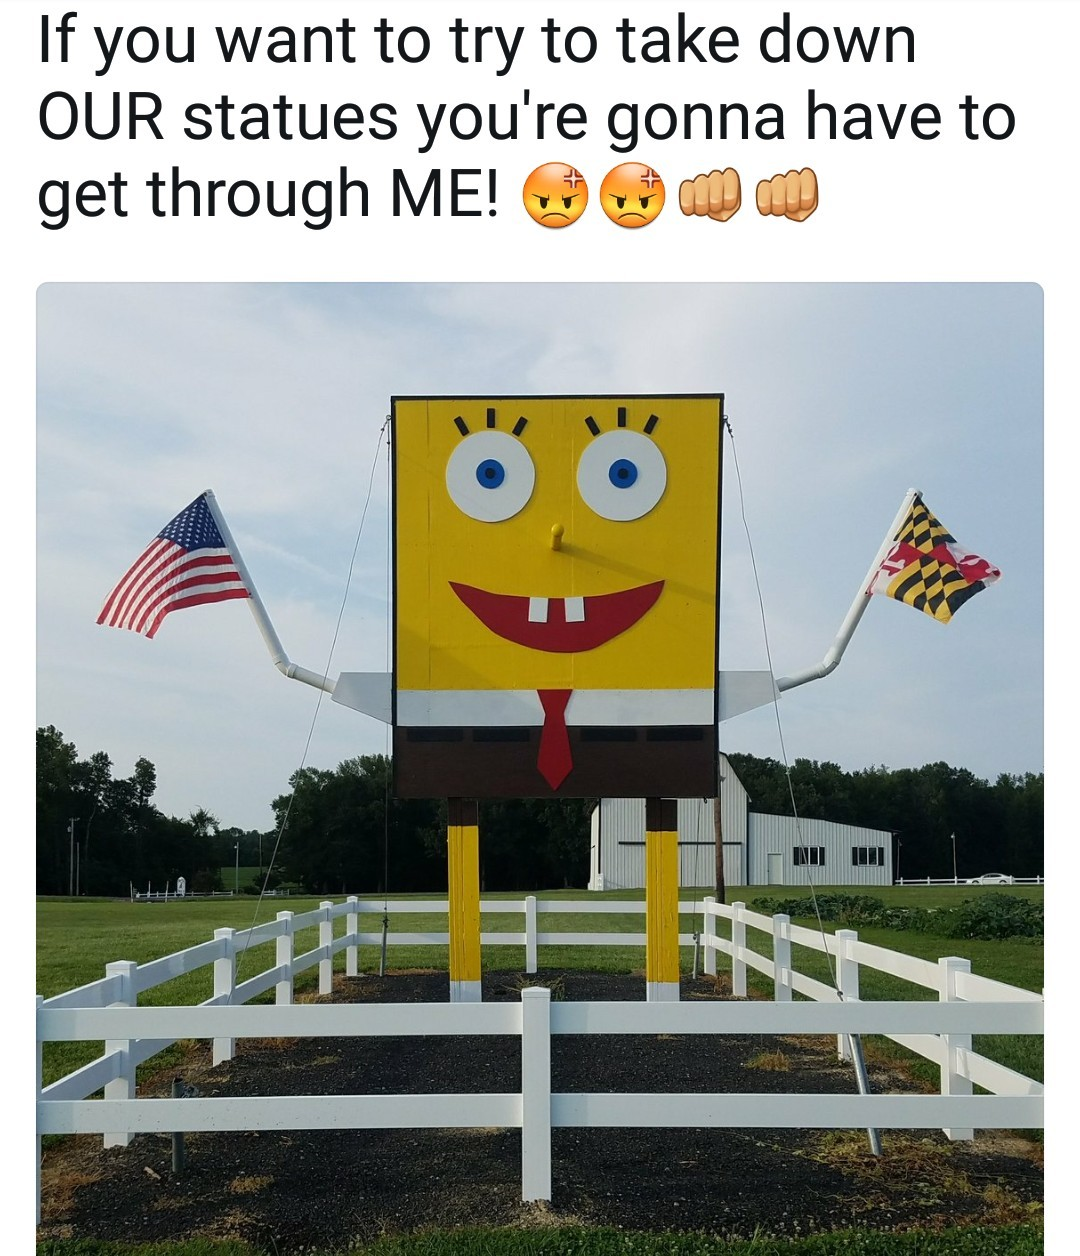 I don't have a problem with taking statues down, just don't do it so unilaterally. - meme